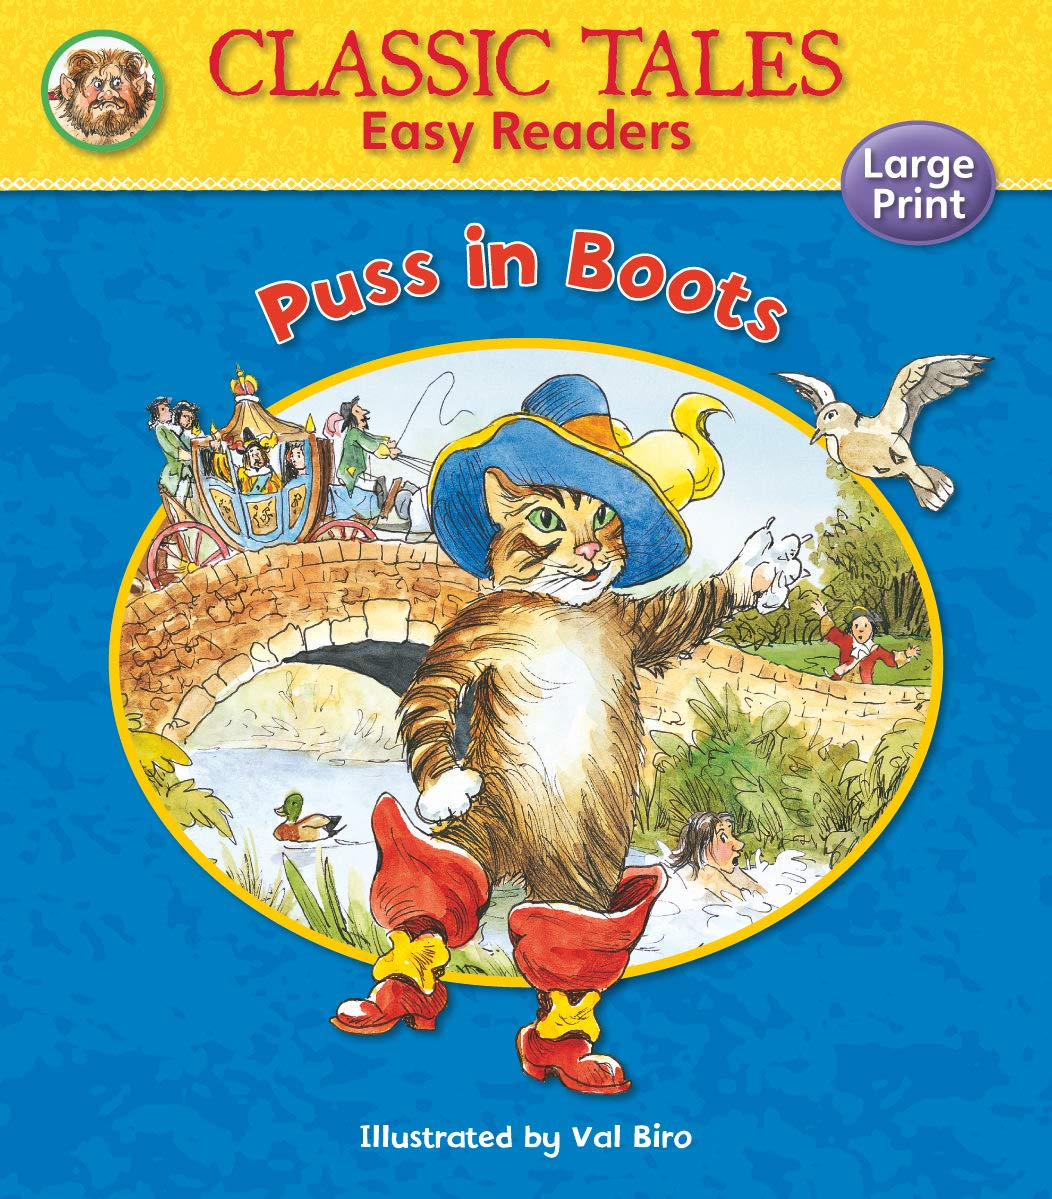 PUSS IN BOOTS (CLASSIC TALES EASY READERS)